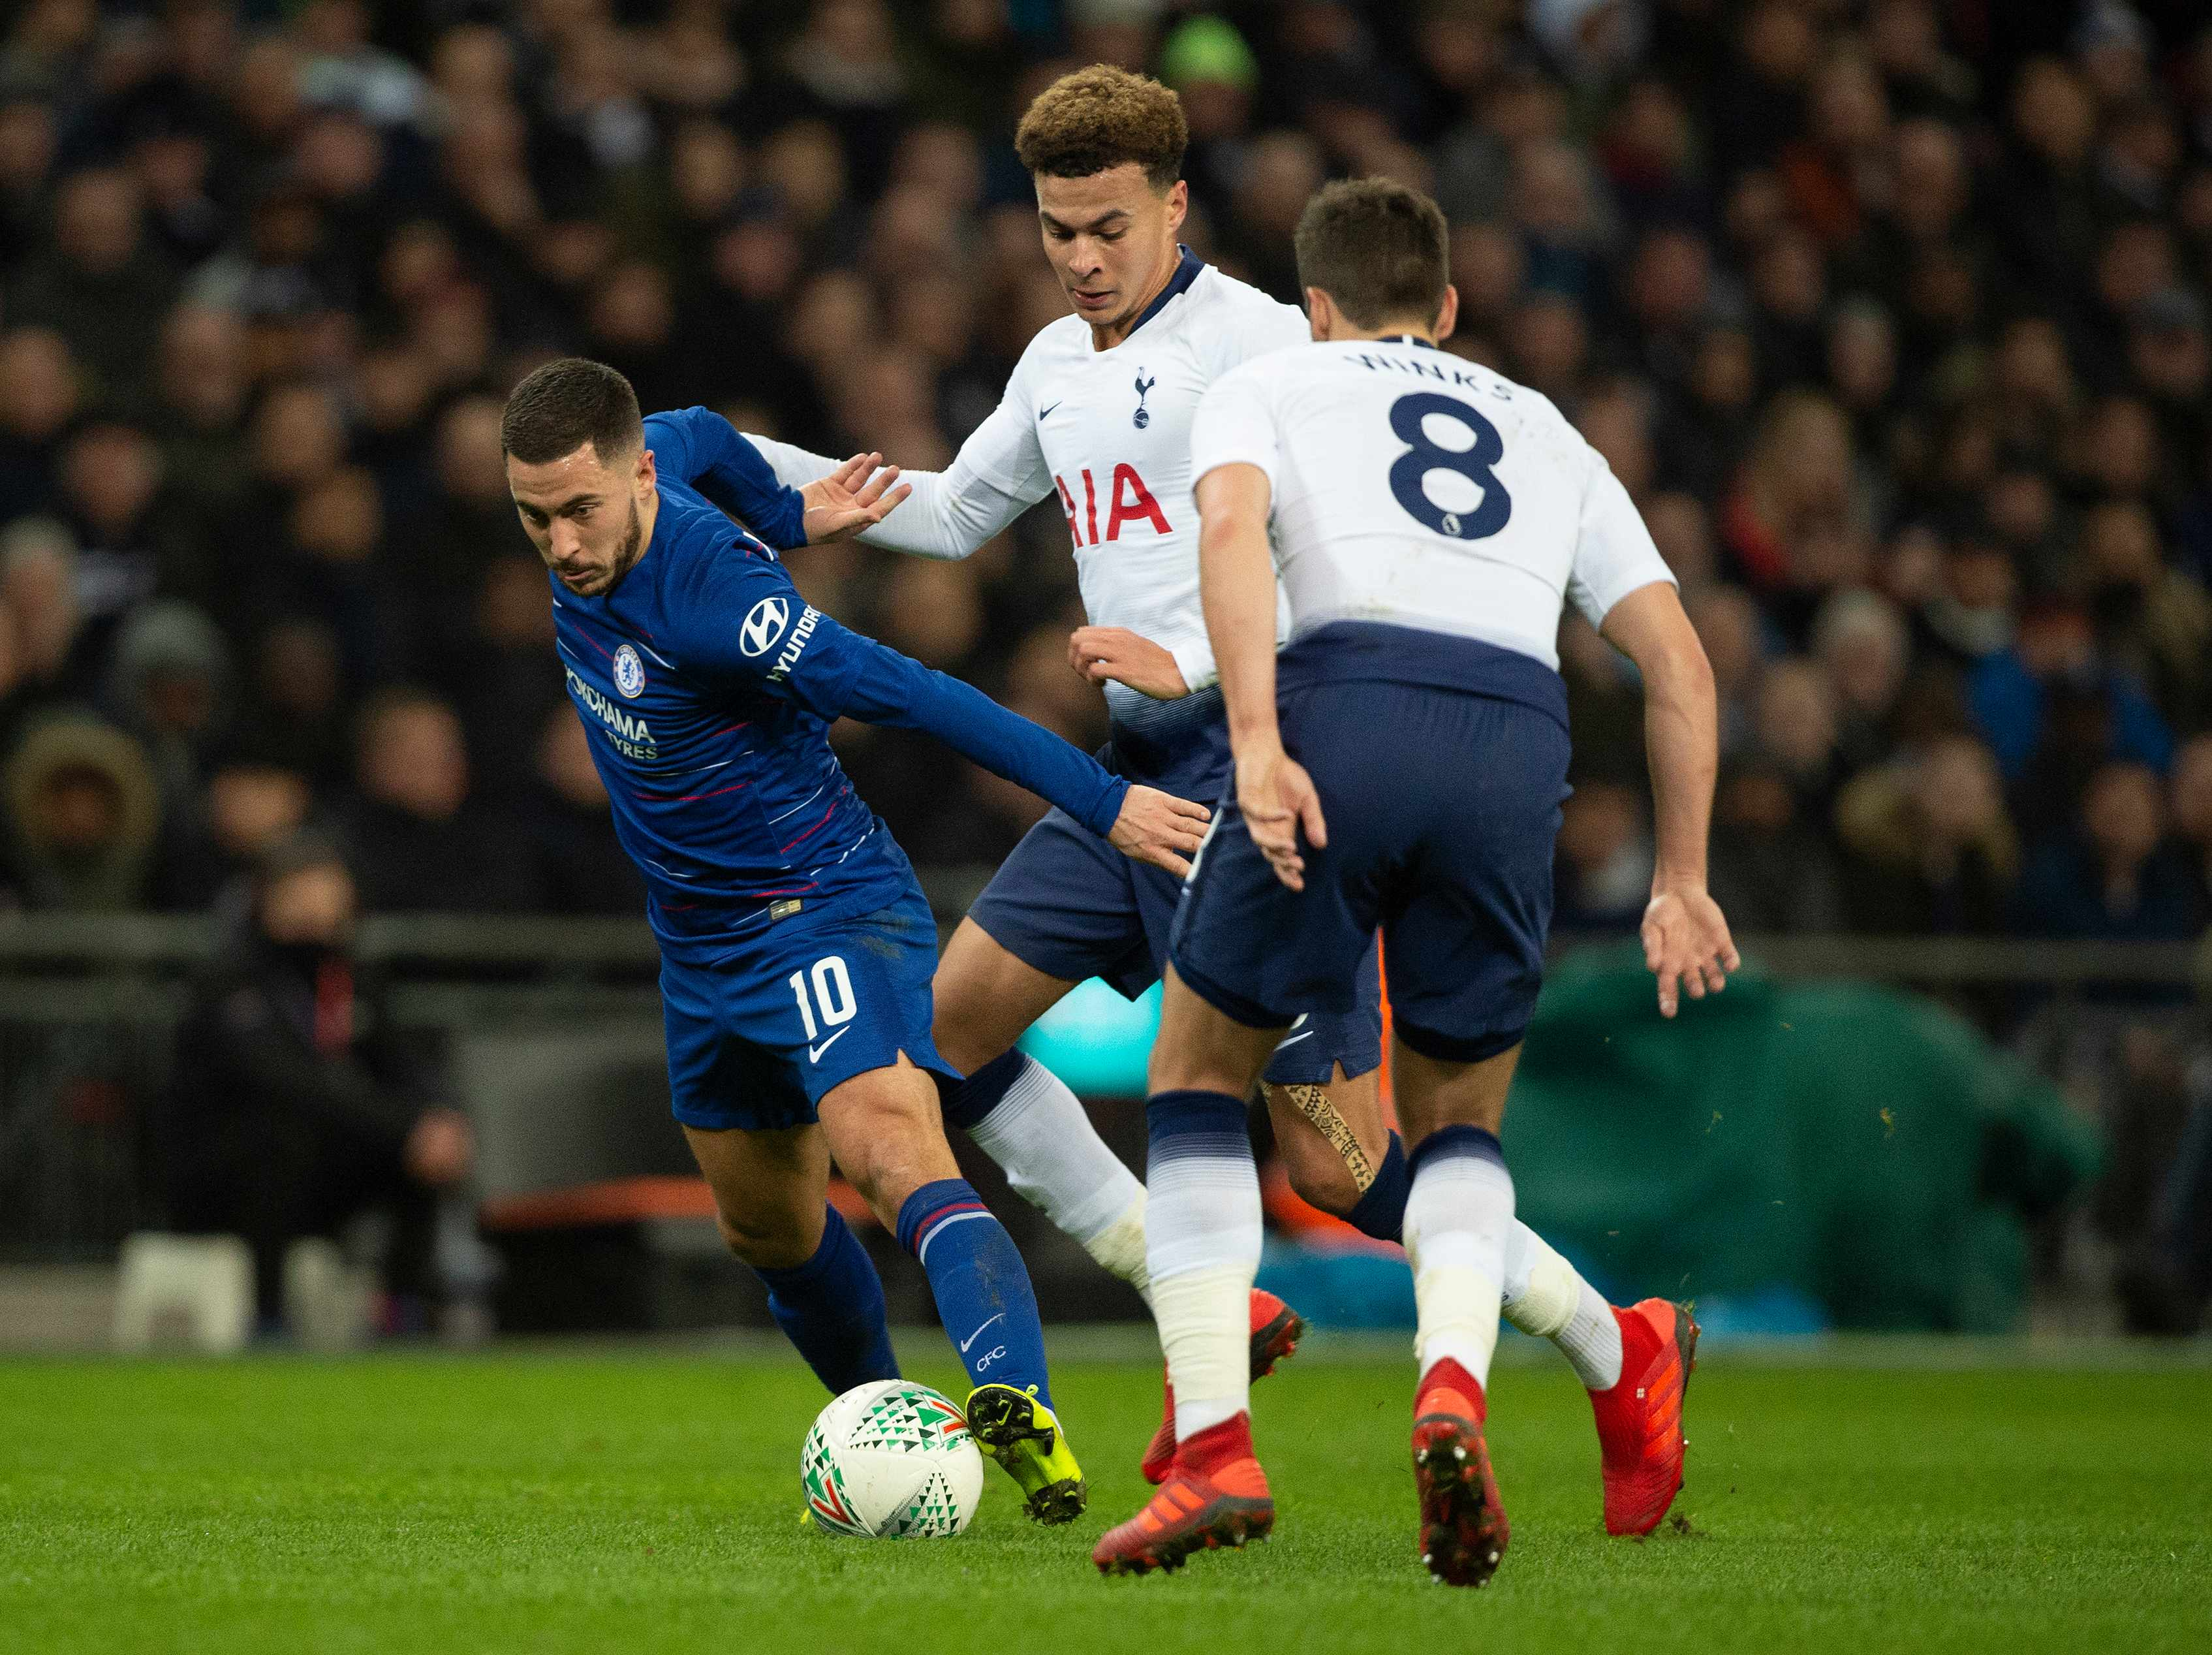 LONDON, ENGLAND - JANUARY 08: Dele Alli and Harry Winks of Tottenham Hotspur and Eden Hazard of Chelsea during the Carabao Cup Semi-Final between Tottenham Hotspur and Chelsea at Wembley Stadium on January 8, 2019 in London, England. (Photo by Visionhaus/Getty Images)